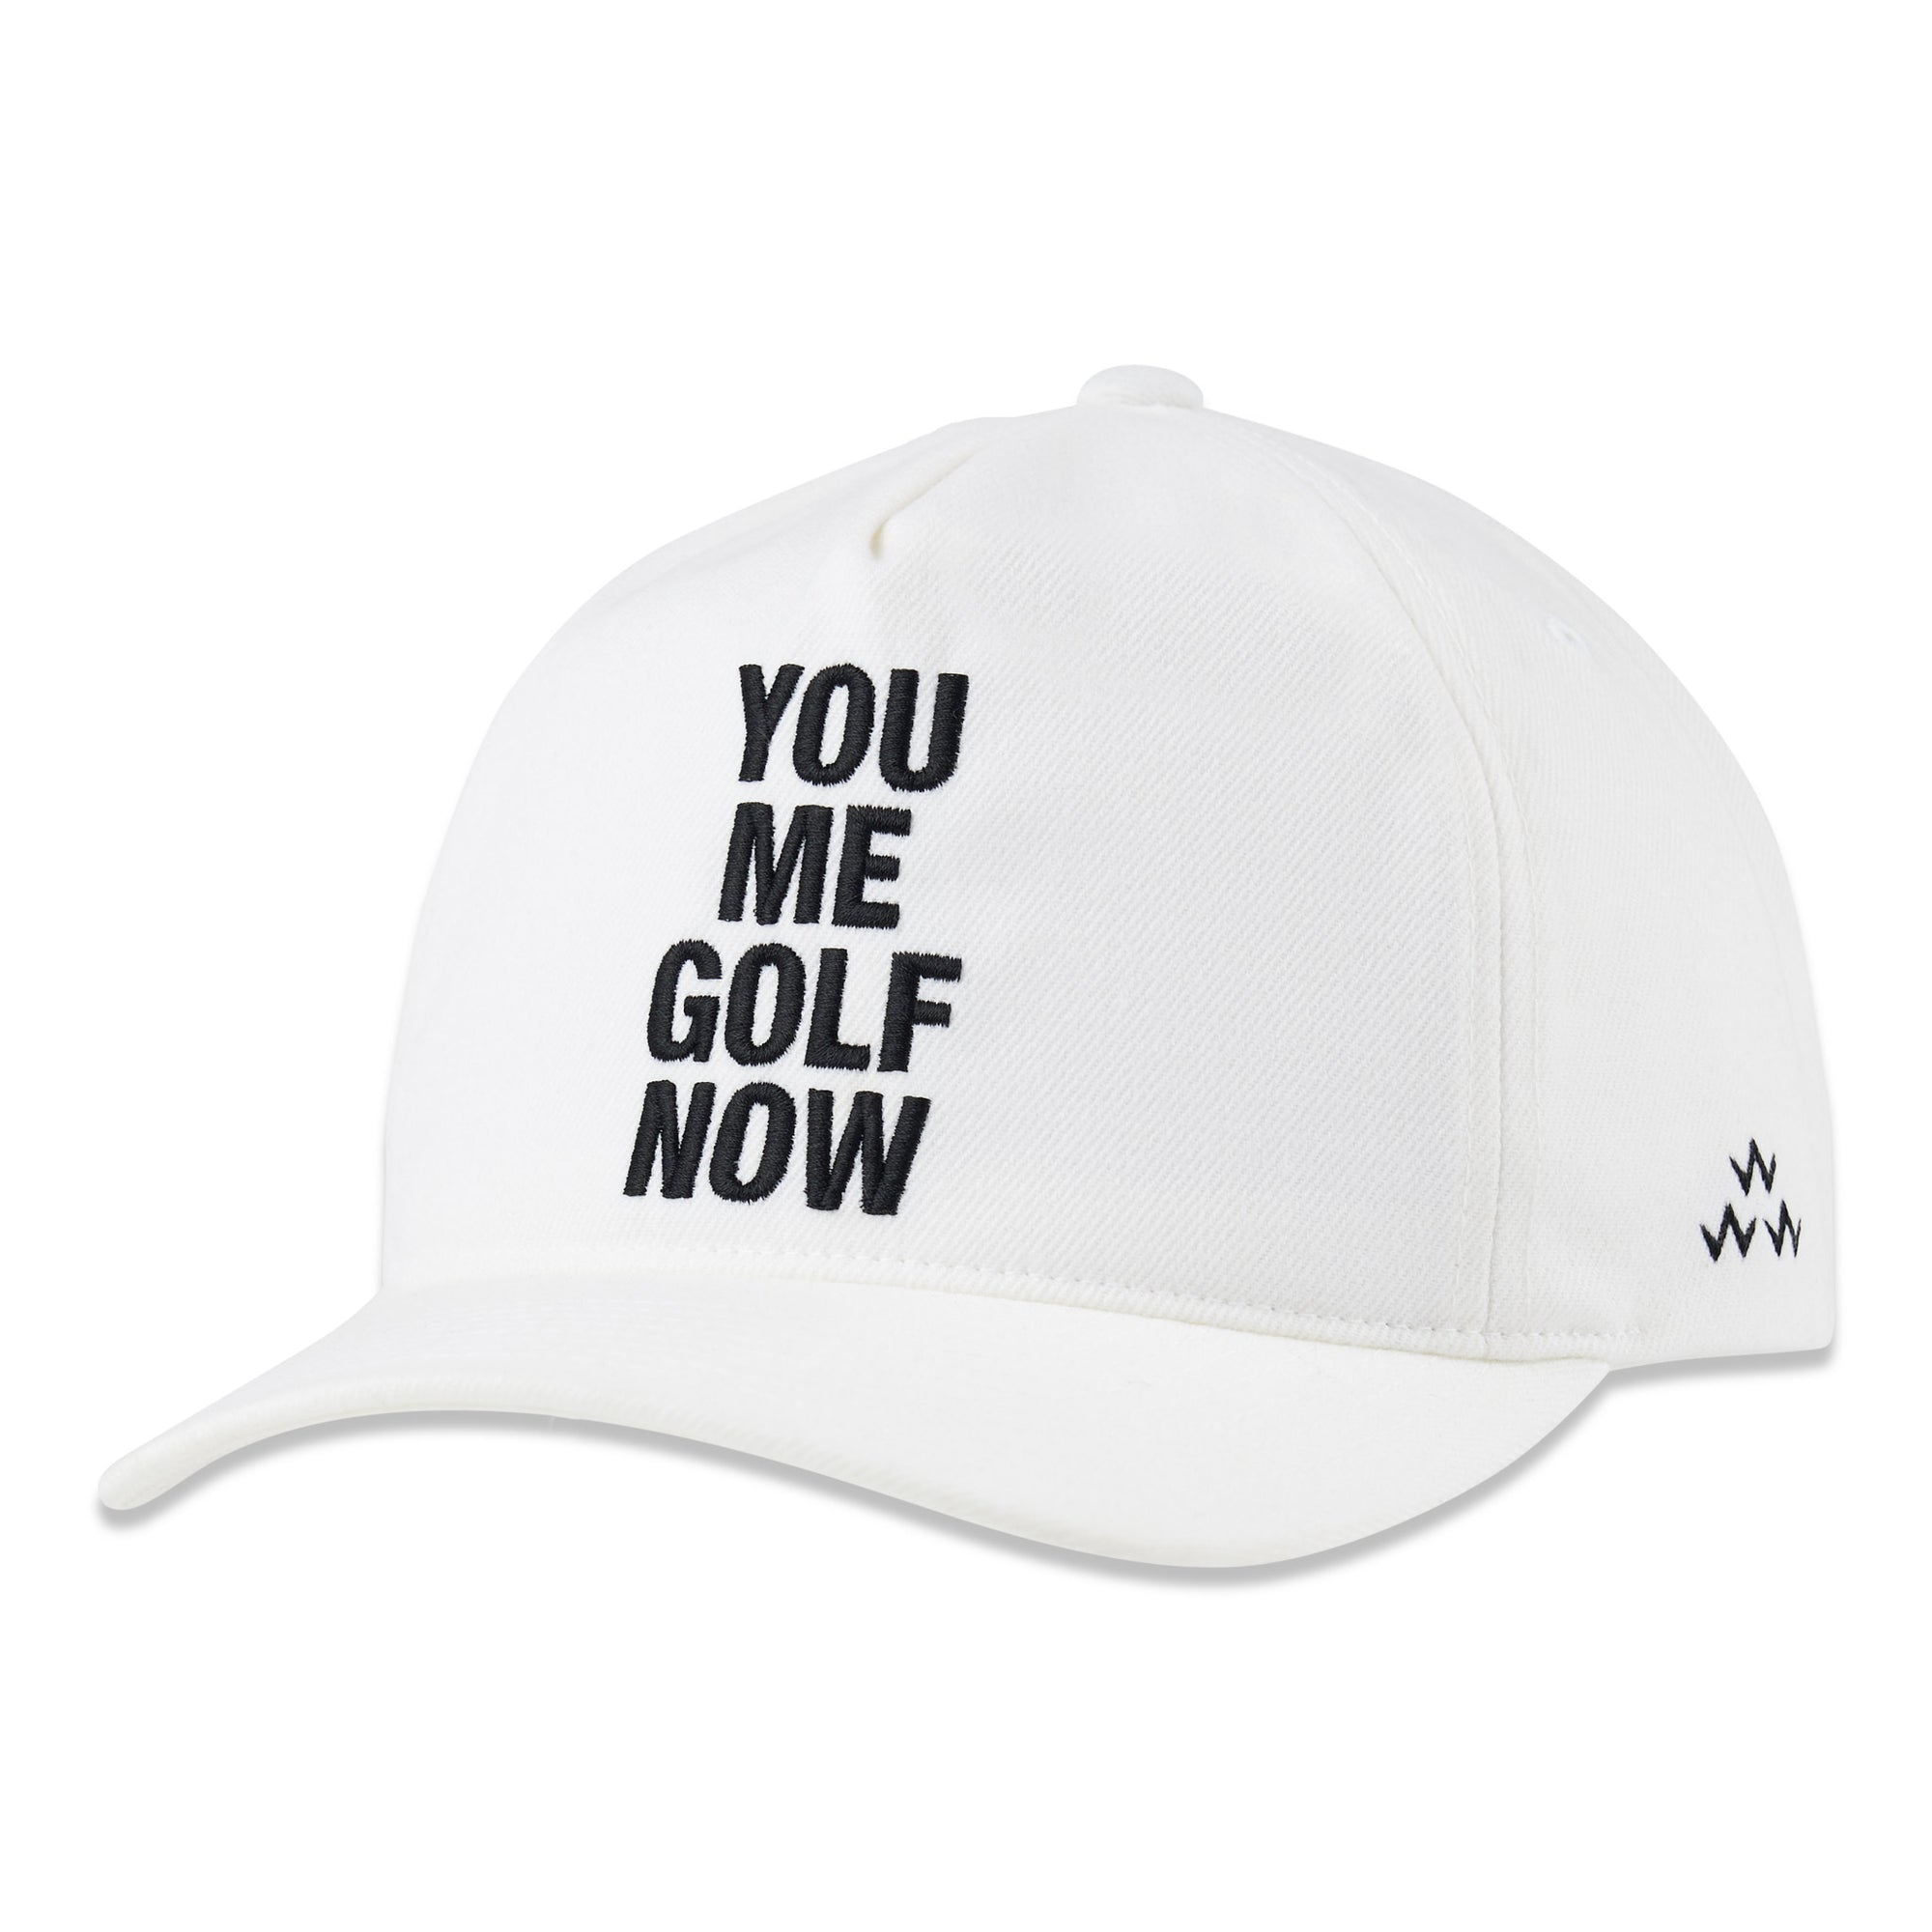 birds-of-condor-white-you-me-golf-now-snapback-hat-front